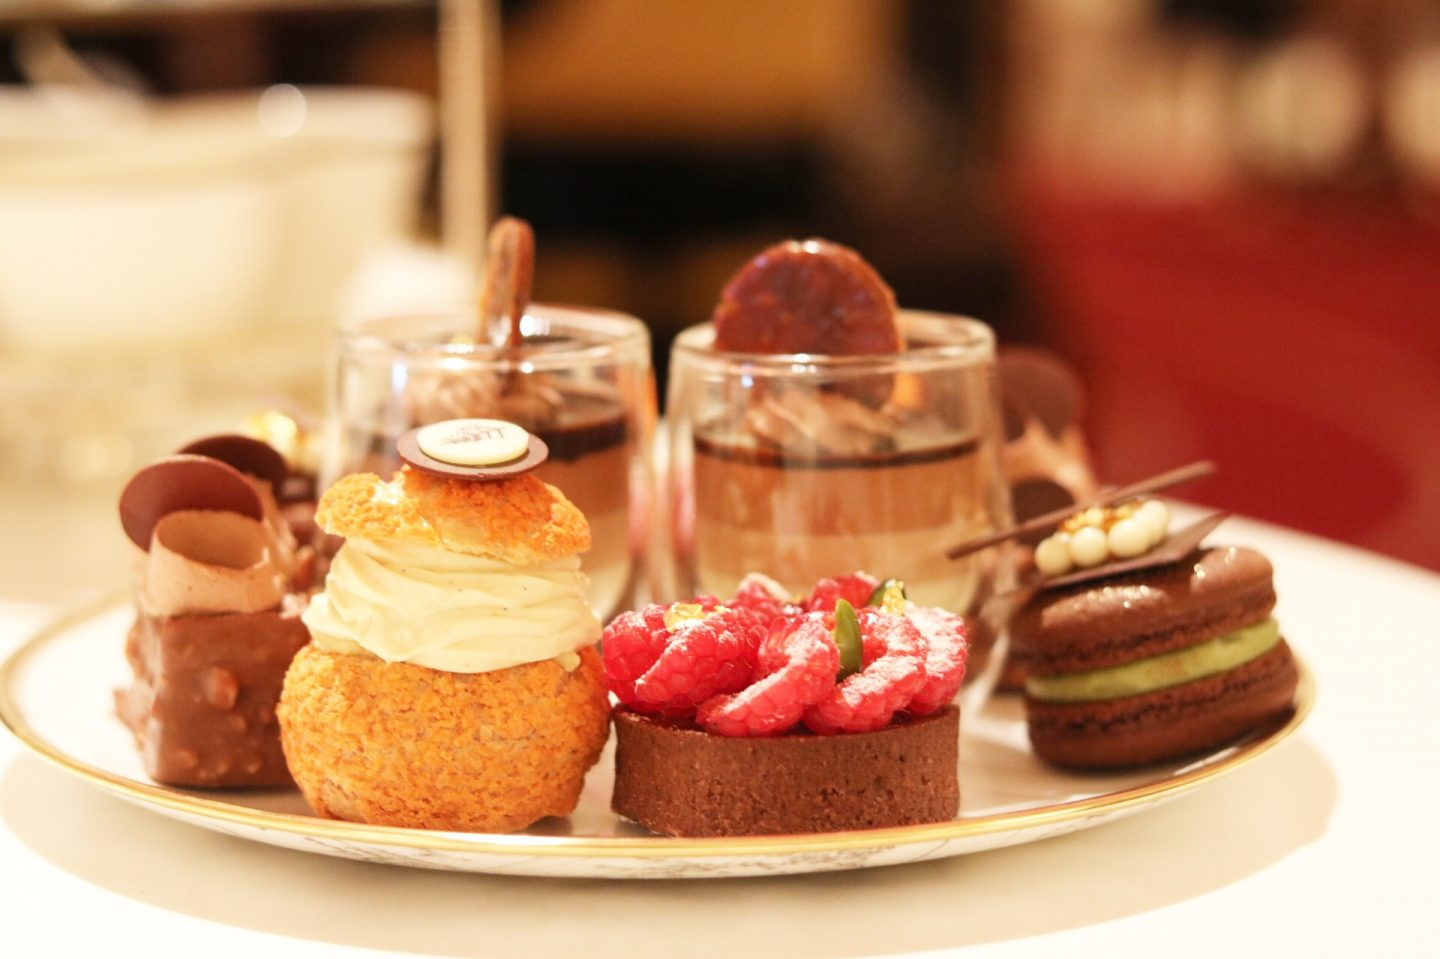 The Chocoholic Afternoon Tea at Four Seasons Hotel London at Ten Trinity Square